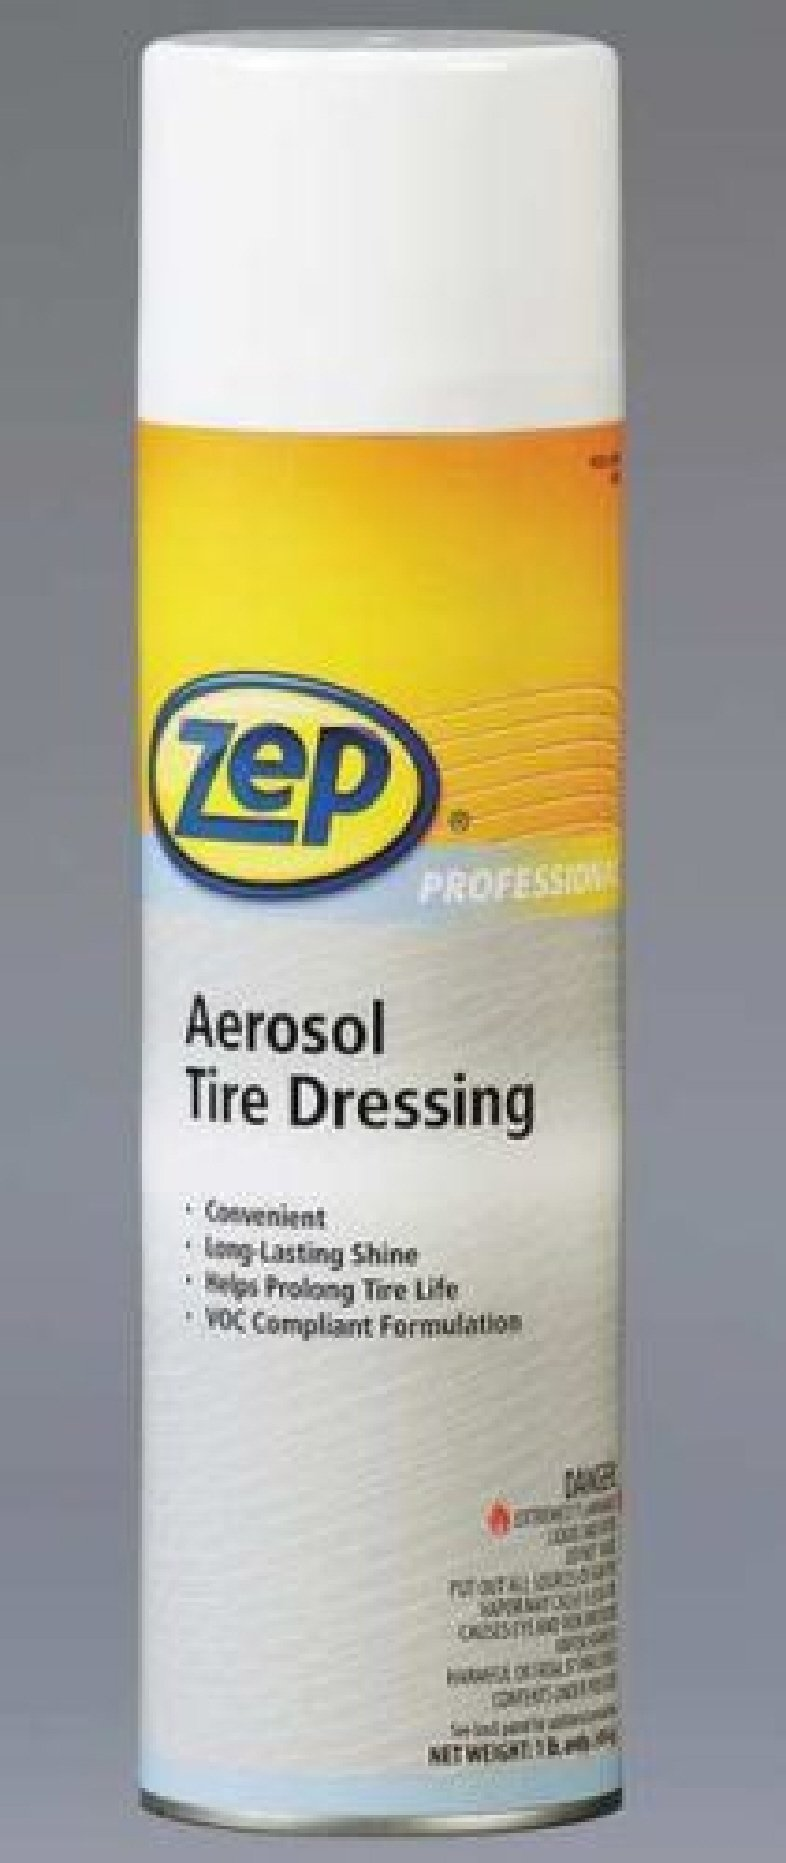 Zep Professional R08401 Tire Dressing Aerosol - 12 Pack